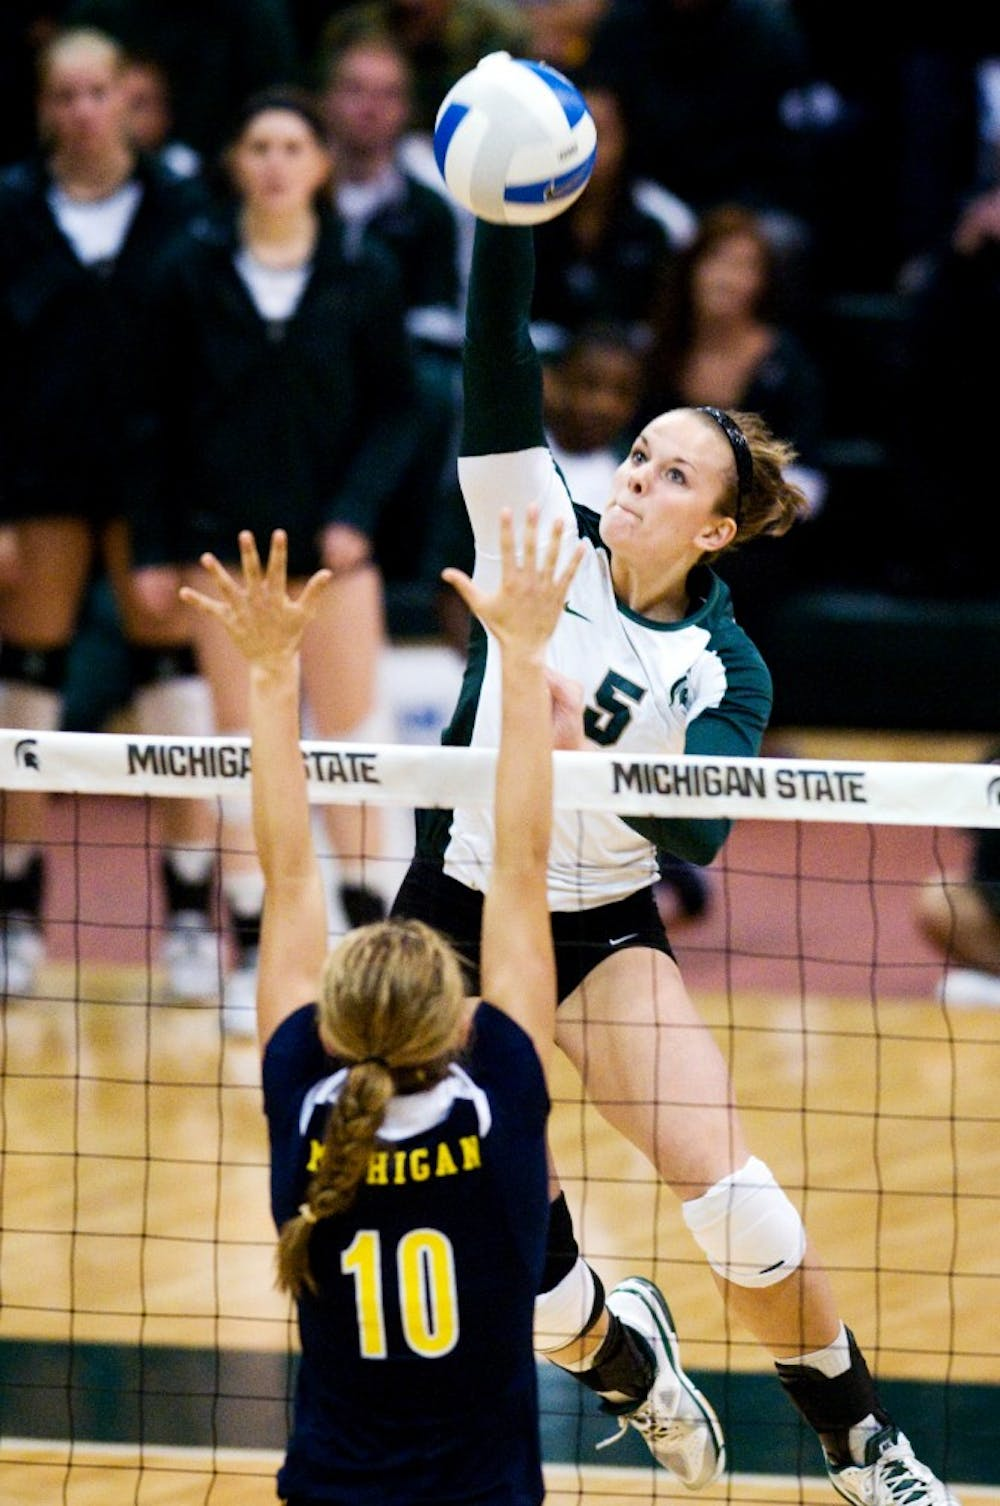 Senior outside hitter Jenilee Rathje hits the ball over Michigan setter Lexi Dannemiller Oct. 19 at Jenison Field House. The Spartans defeated the Wolverines 3-1. Matt Radick/The State News